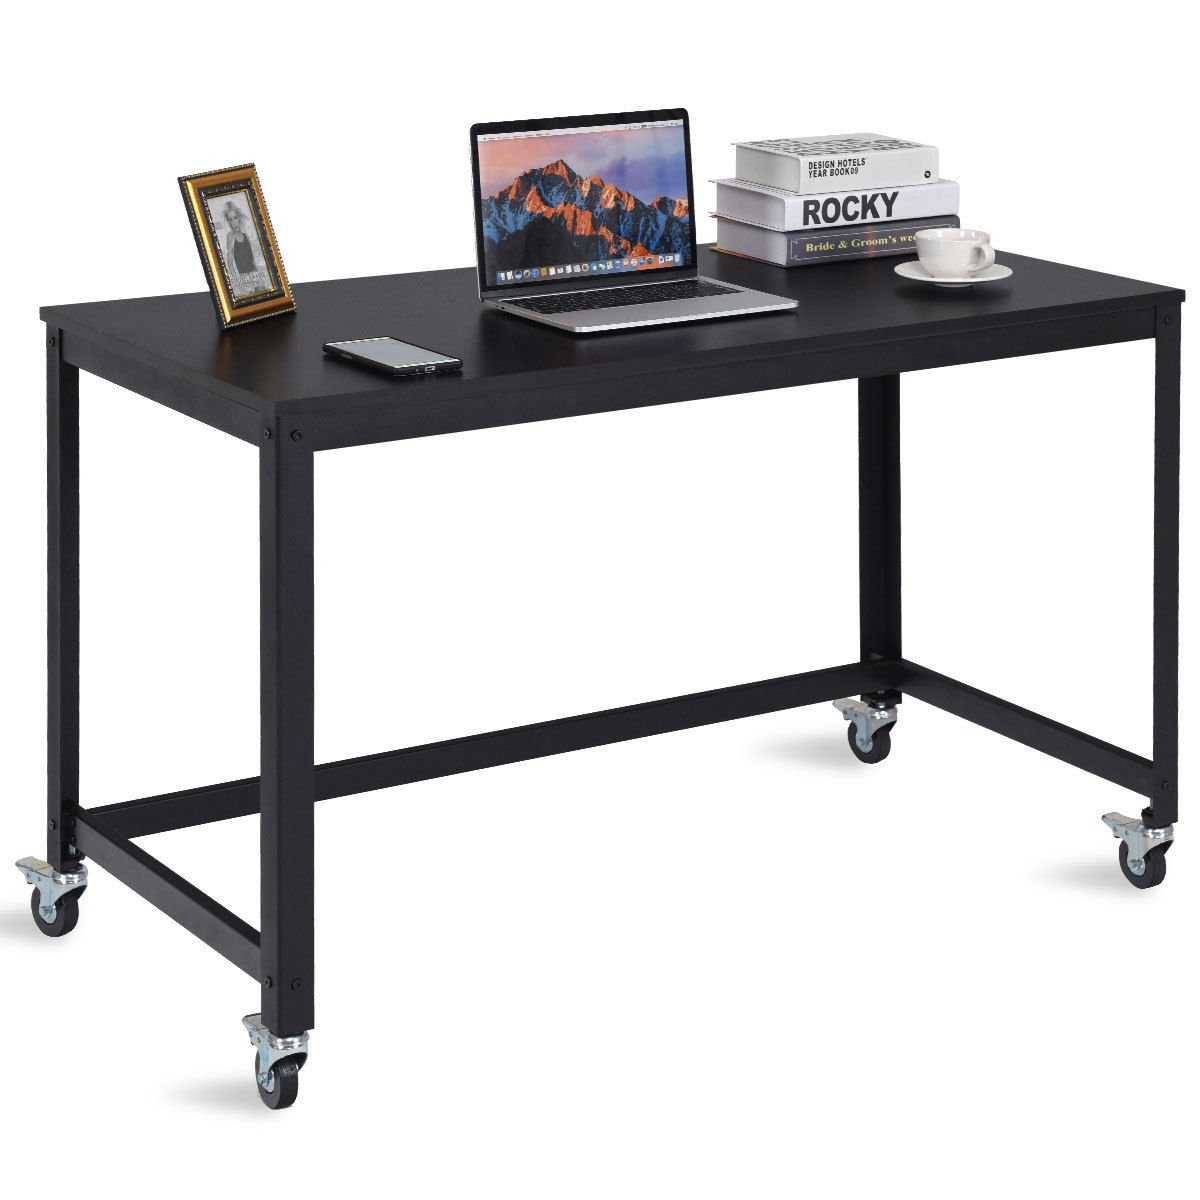 TANGKULA Computer Desk Wood Portable Compact Simple Style Home Office Study Table Writing Desk Workstatation with Wheels, Home Office Collection Work Table (Black)